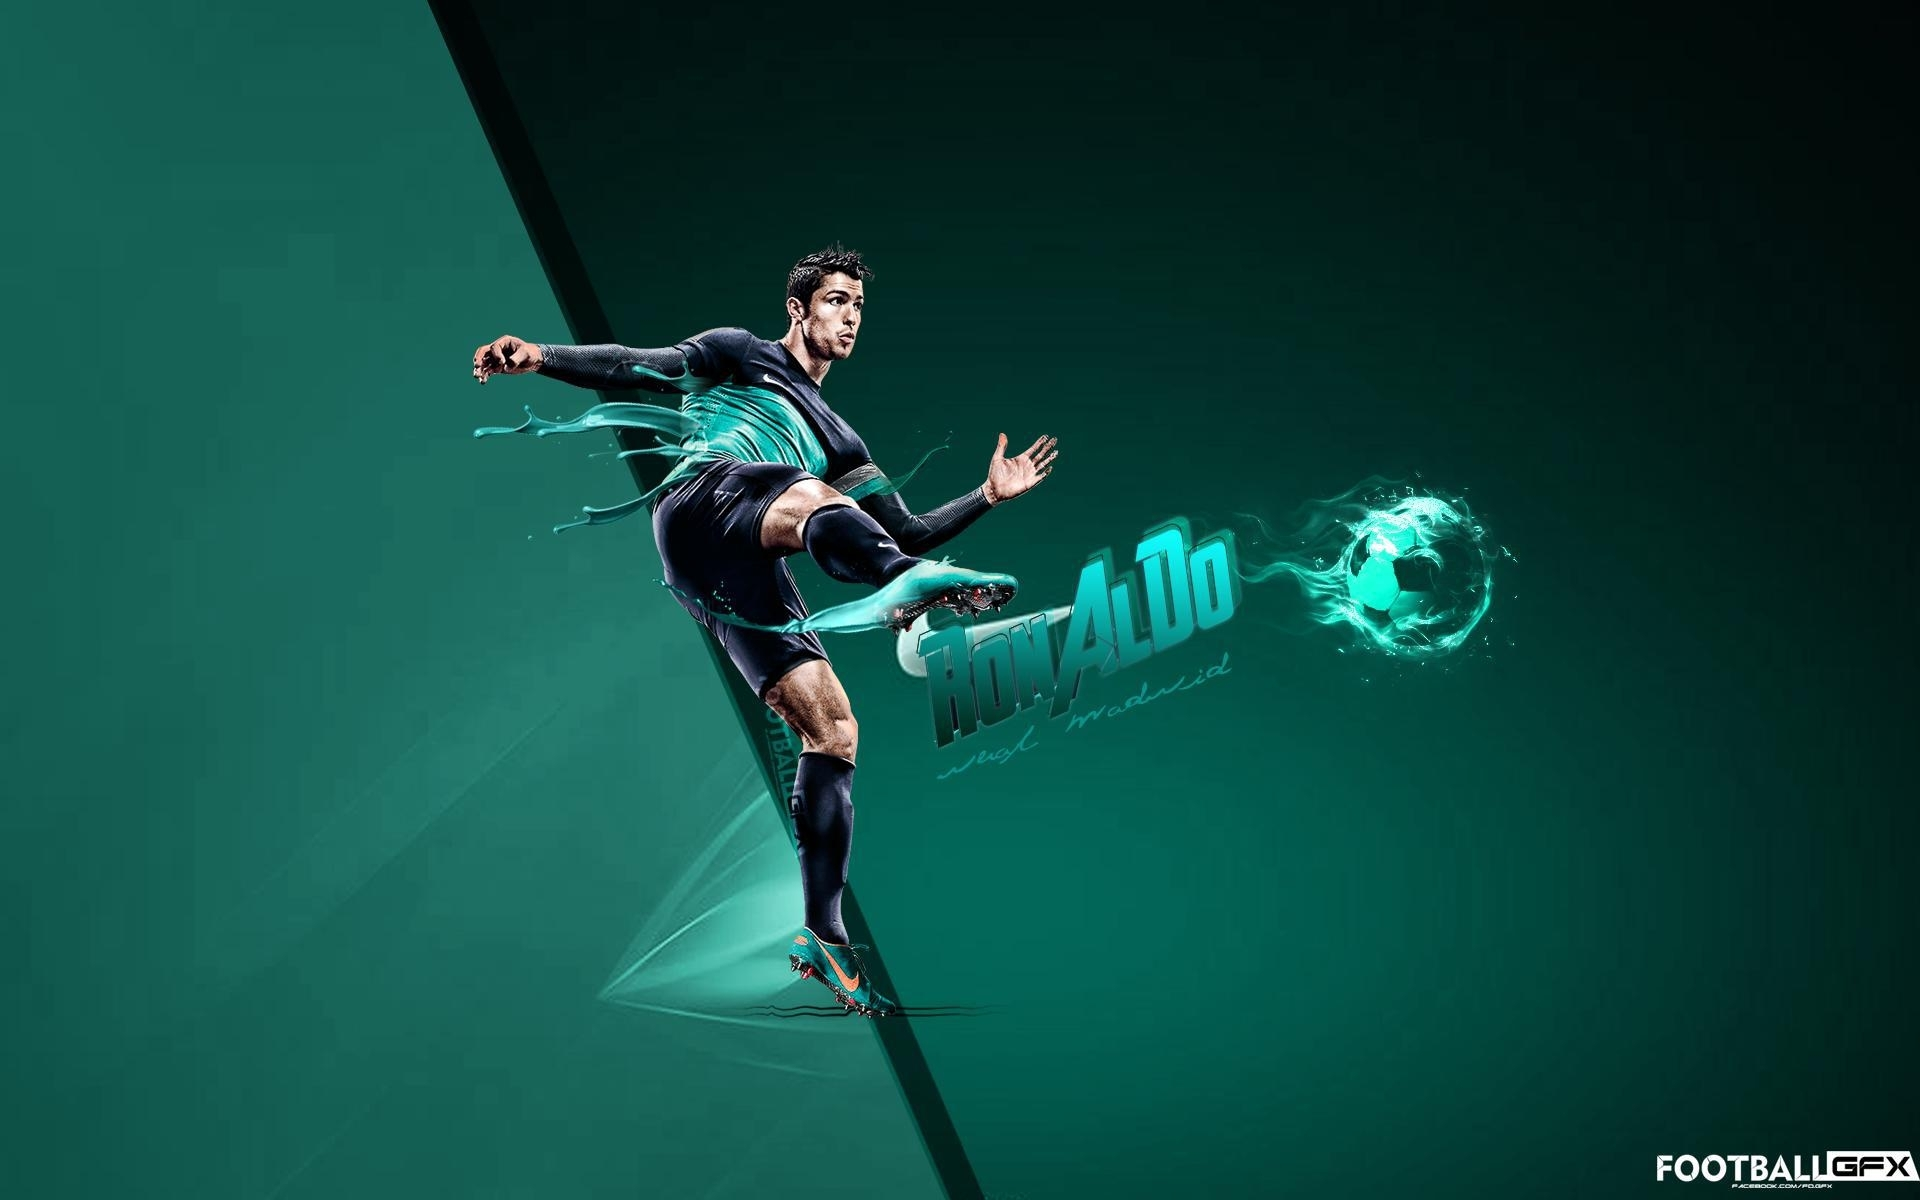 cristiano ronaldo nike pose hd desktop wallpaper : widescreen : high